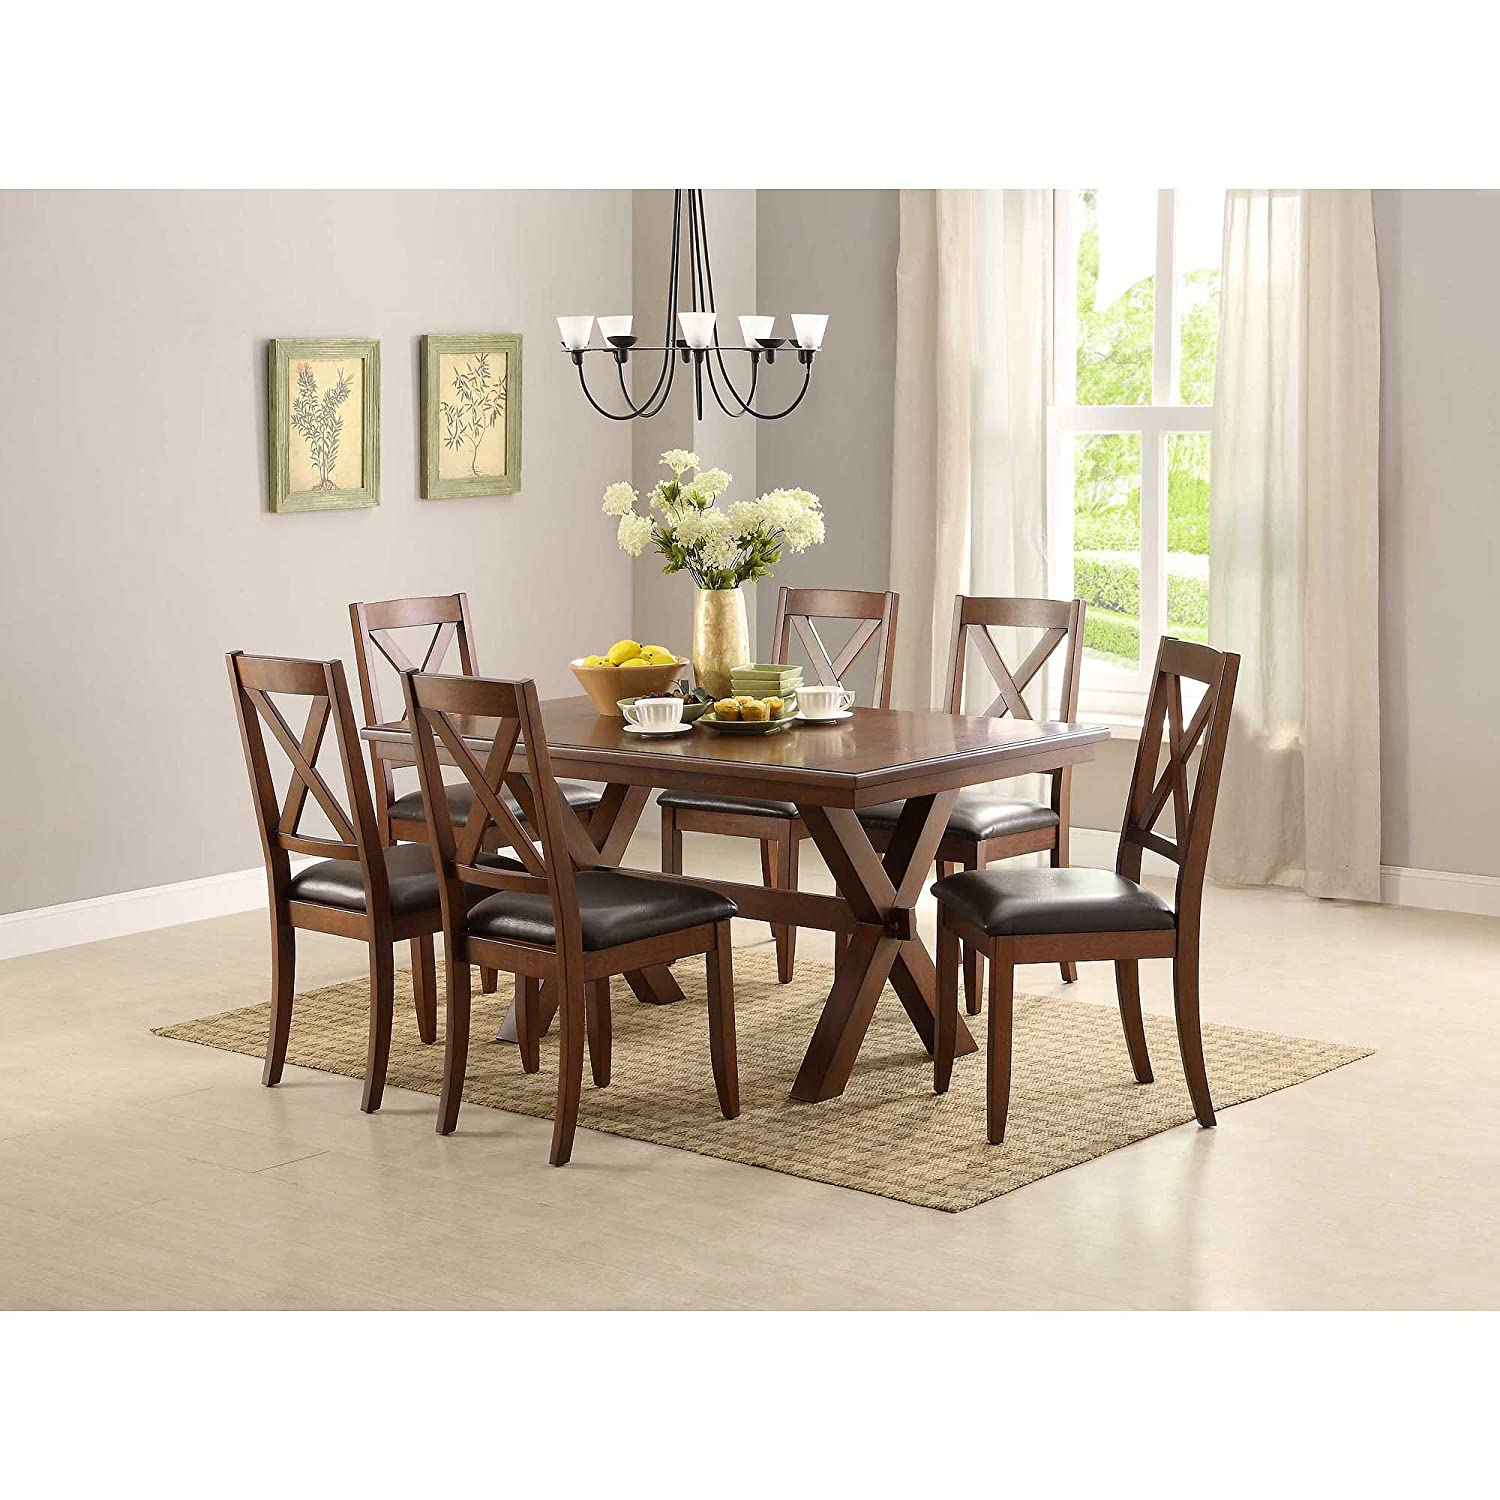 Amazon.com   Better Homes And Gardens Maddox Crossing Dining Table, Brown    Tables